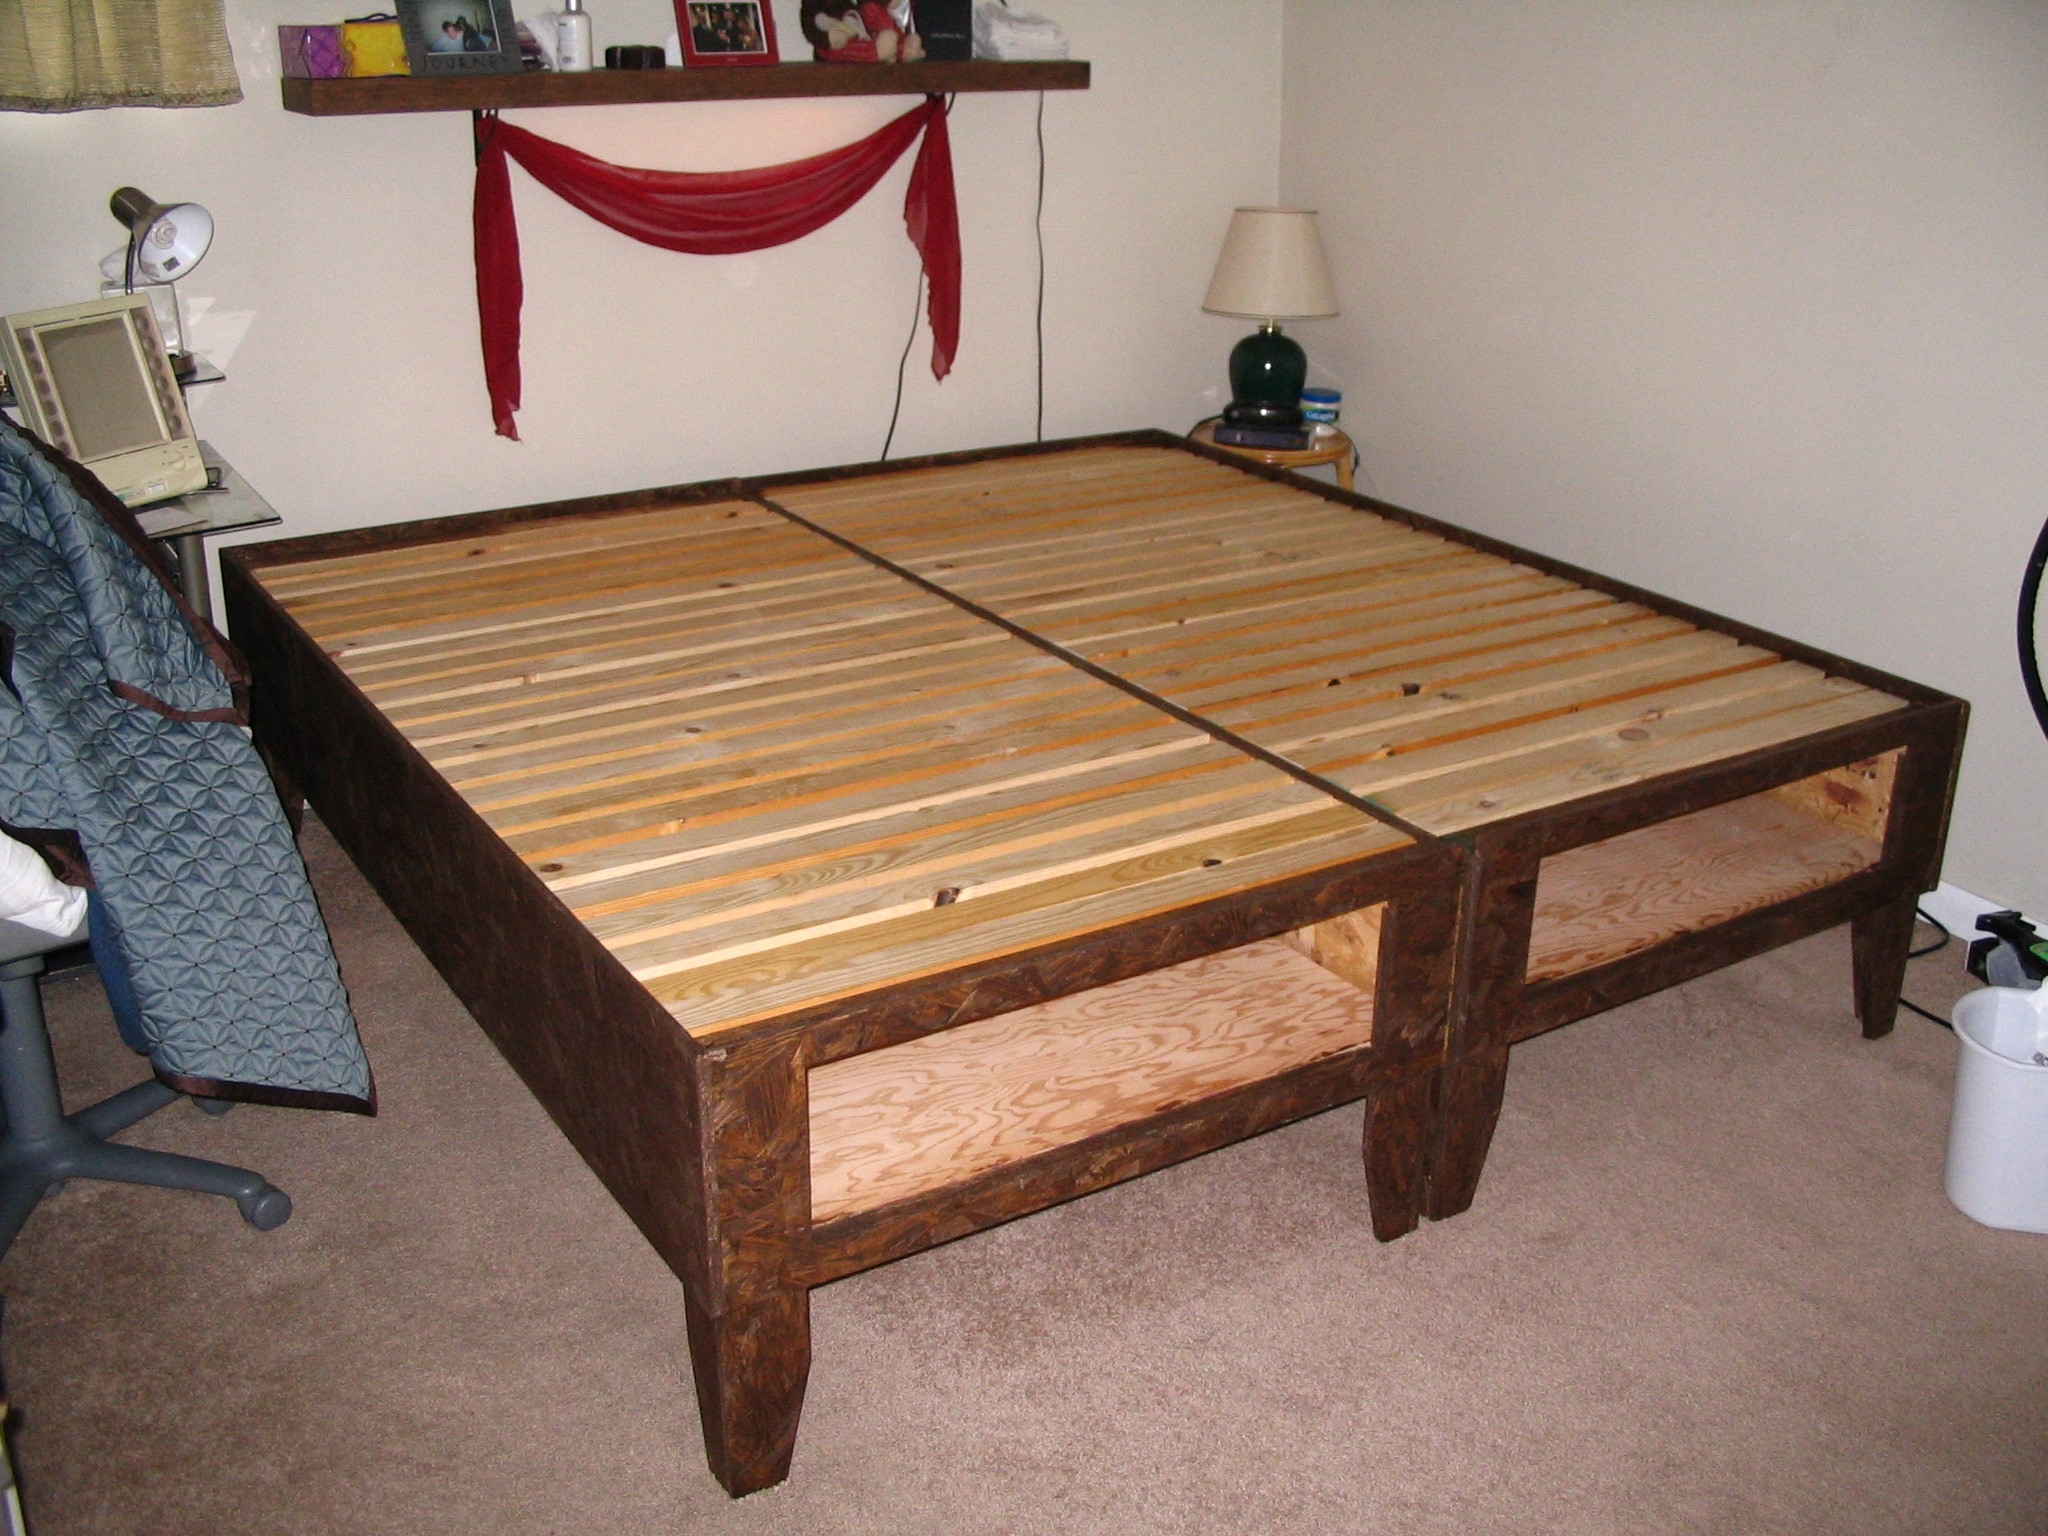 King Size Bed Frame With Drawers Underneath Plansdiy bed with storage for under 100